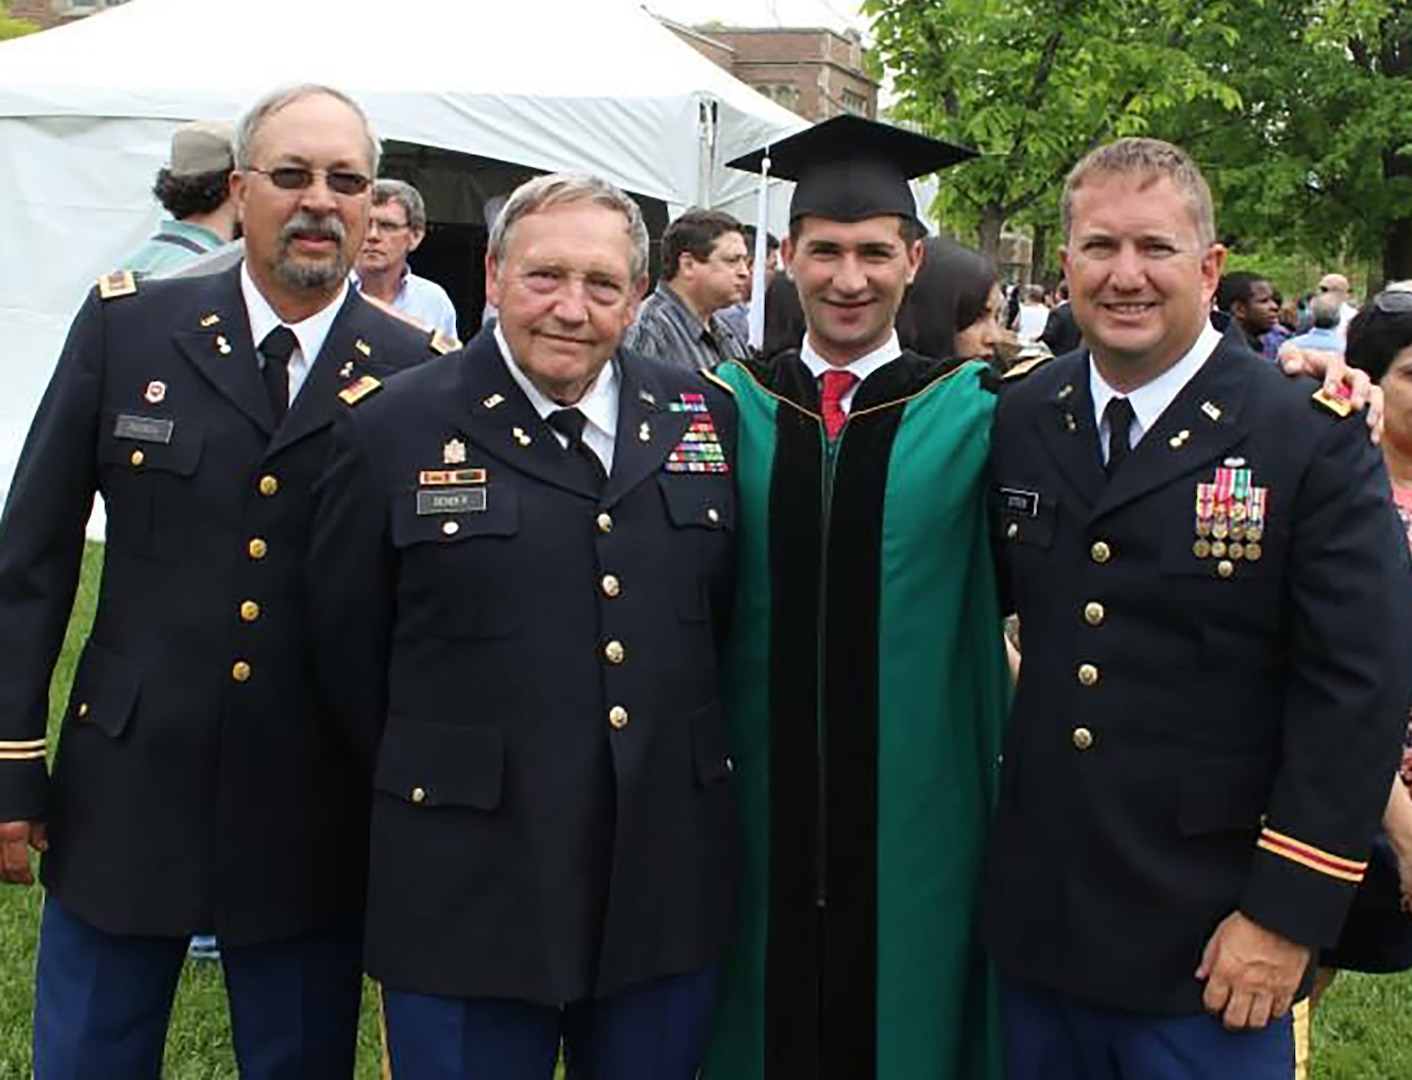 Fahim Masoud, second from right, graduated from Washington University in St. Louis, Missouri. Among those in attendance was retired Iowa Army National Guard CW3 James Ditter, right. Ditter sponsored Masoud to the United States on a student visa.